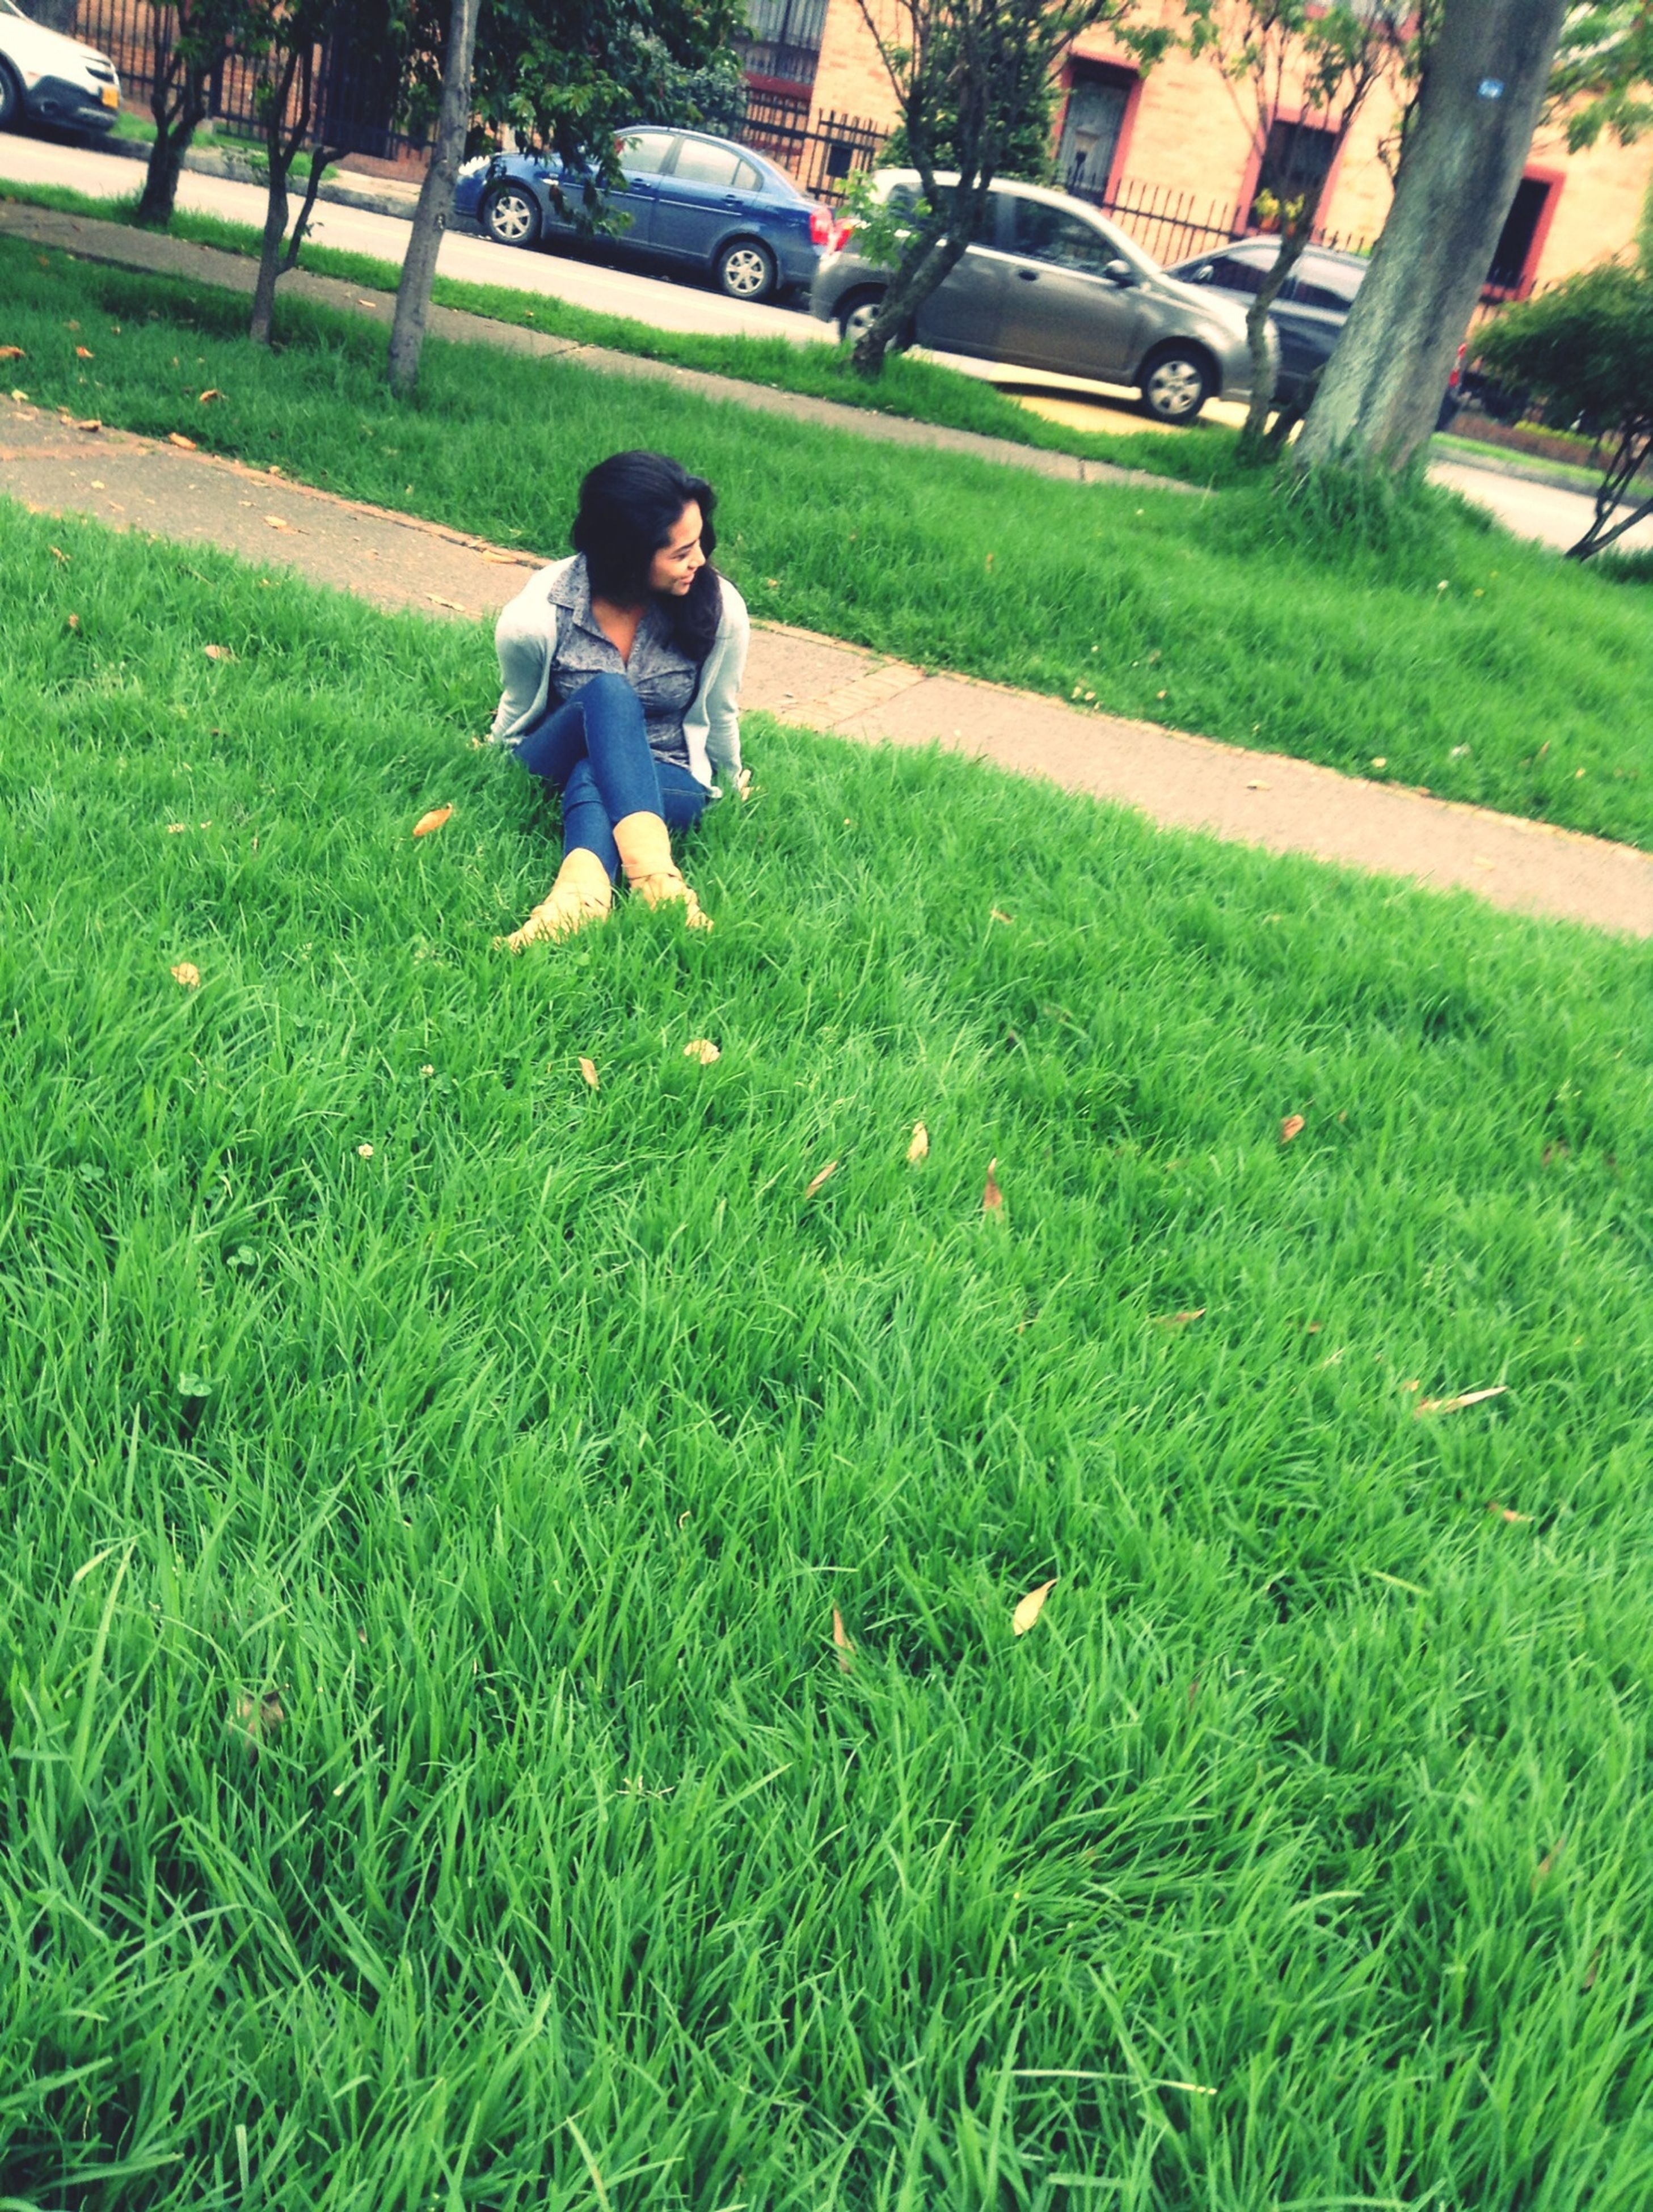 grass, full length, lifestyles, grassy, casual clothing, leisure activity, field, park - man made space, lawn, green color, person, childhood, elementary age, sunlight, park, outdoors, day, sitting